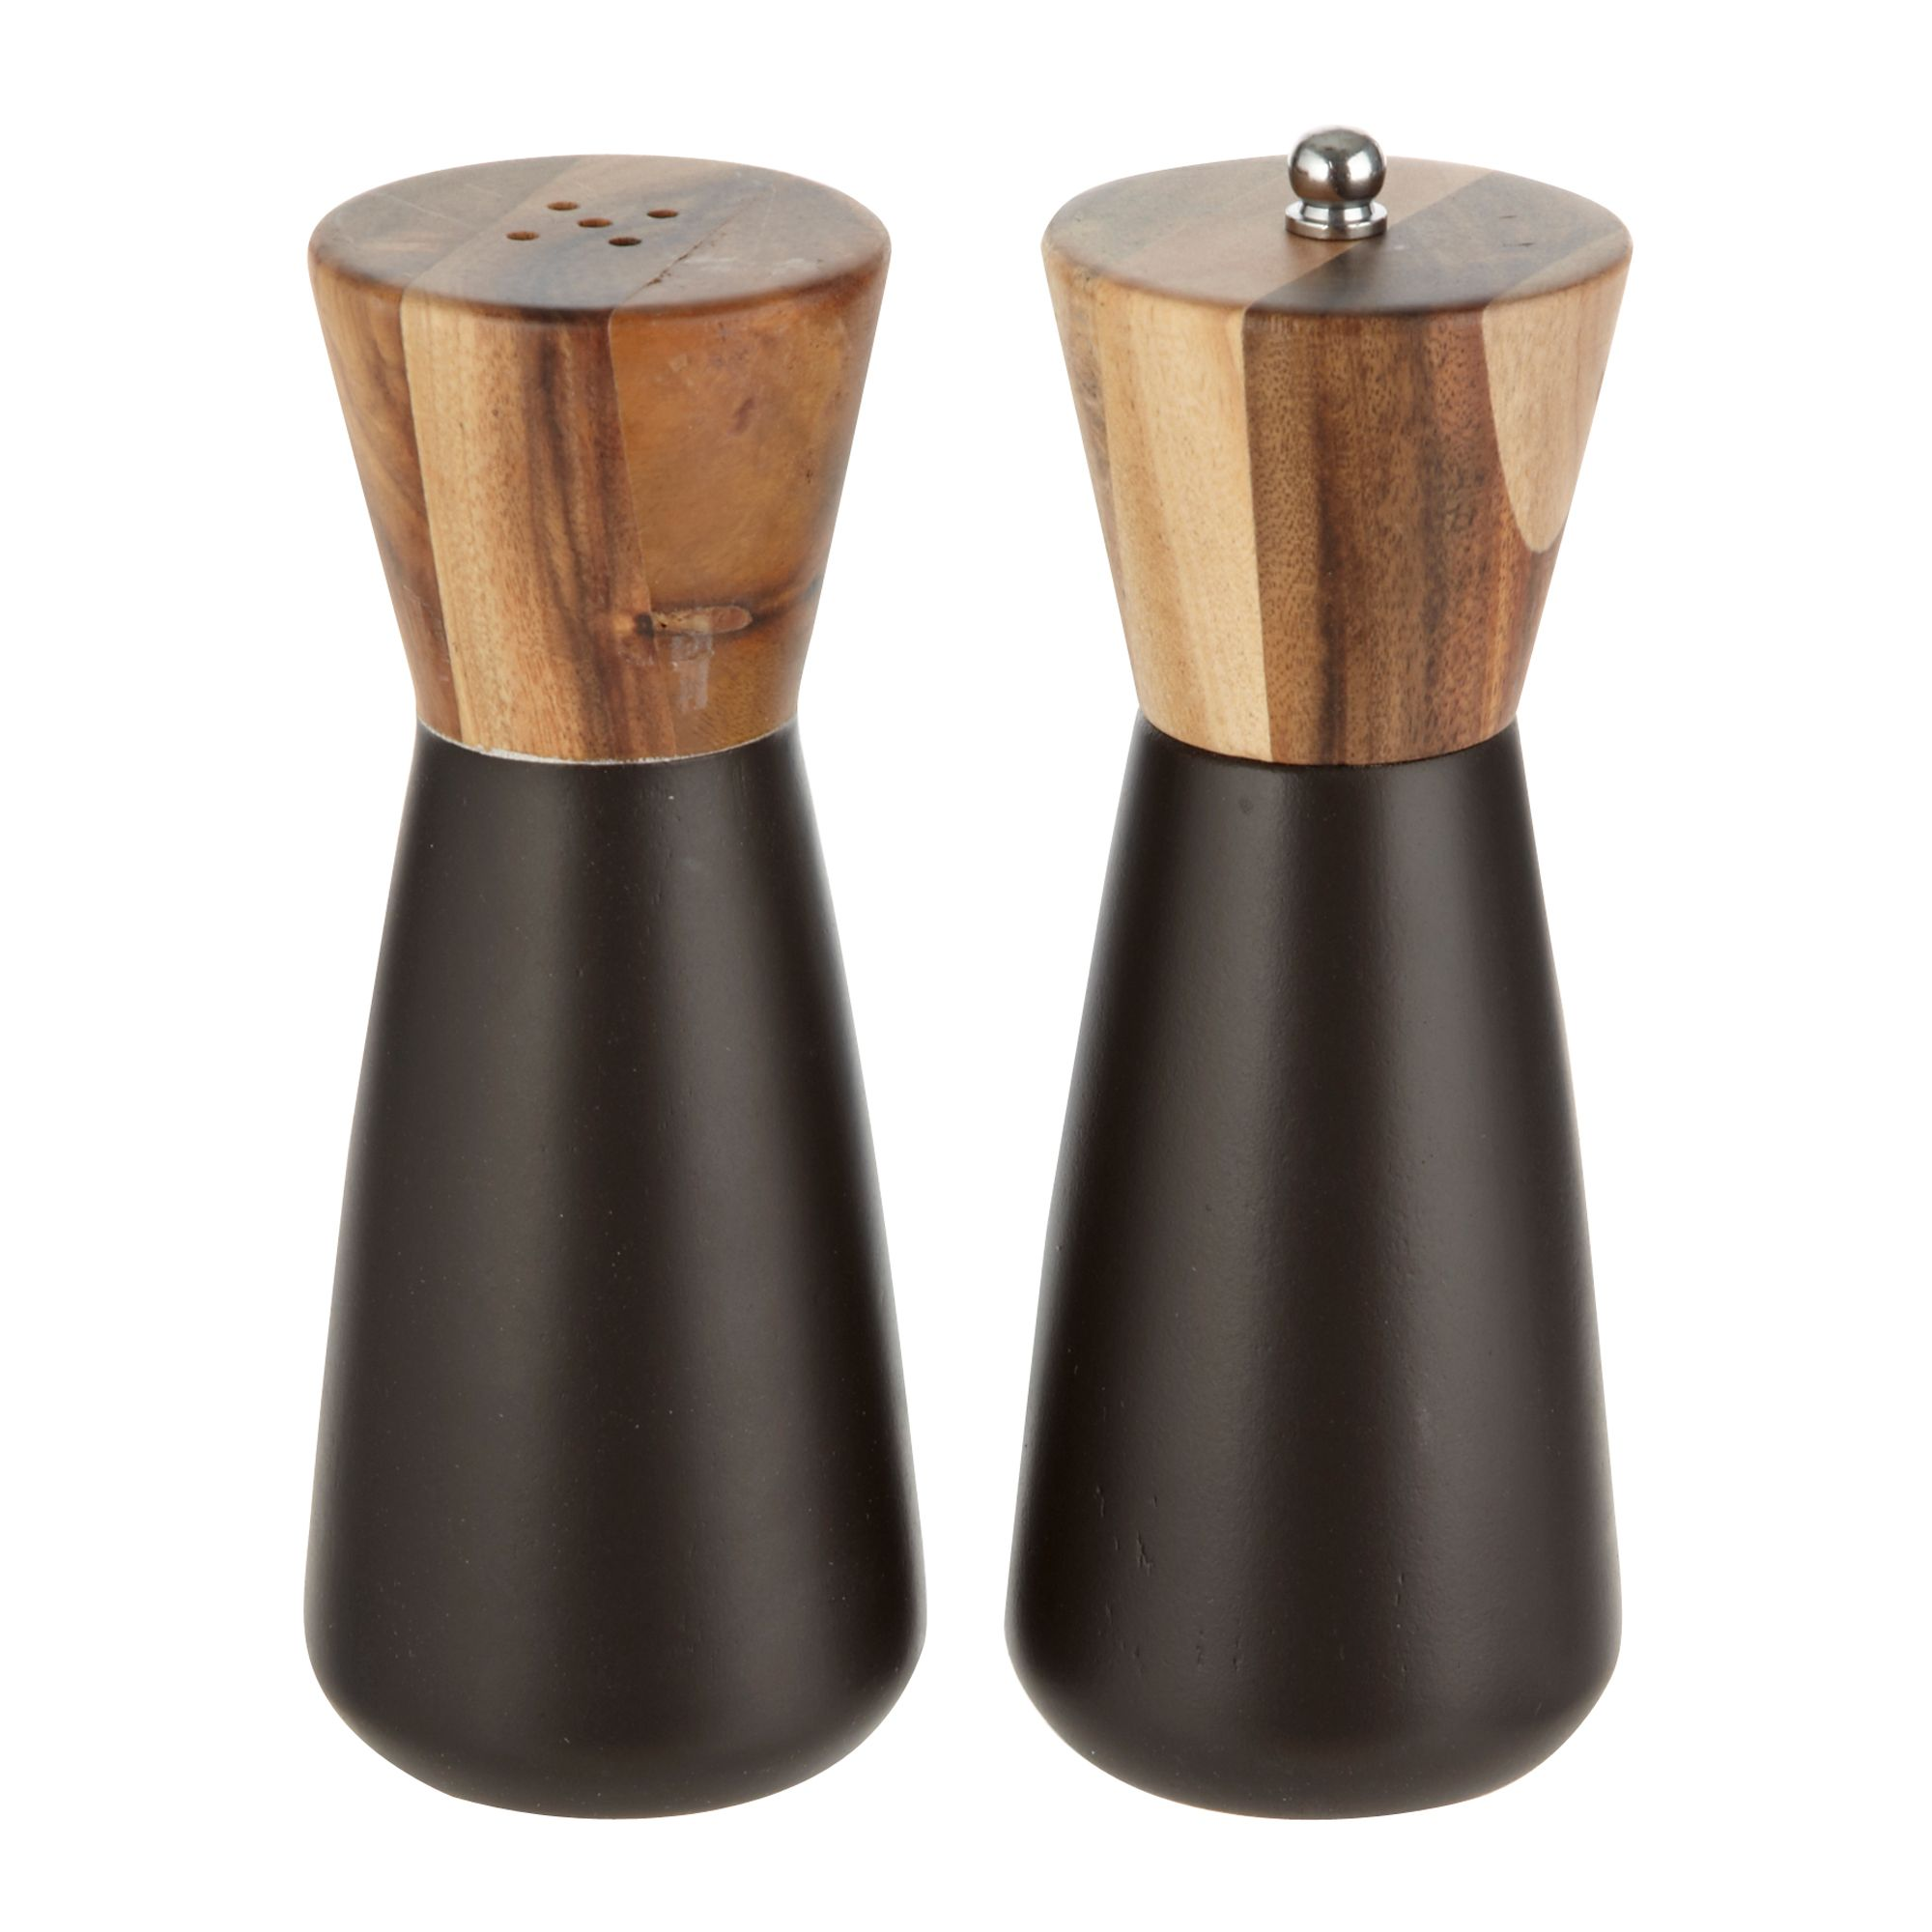 rocha john rocha wooden salt and pepper mill set ebay. Black Bedroom Furniture Sets. Home Design Ideas